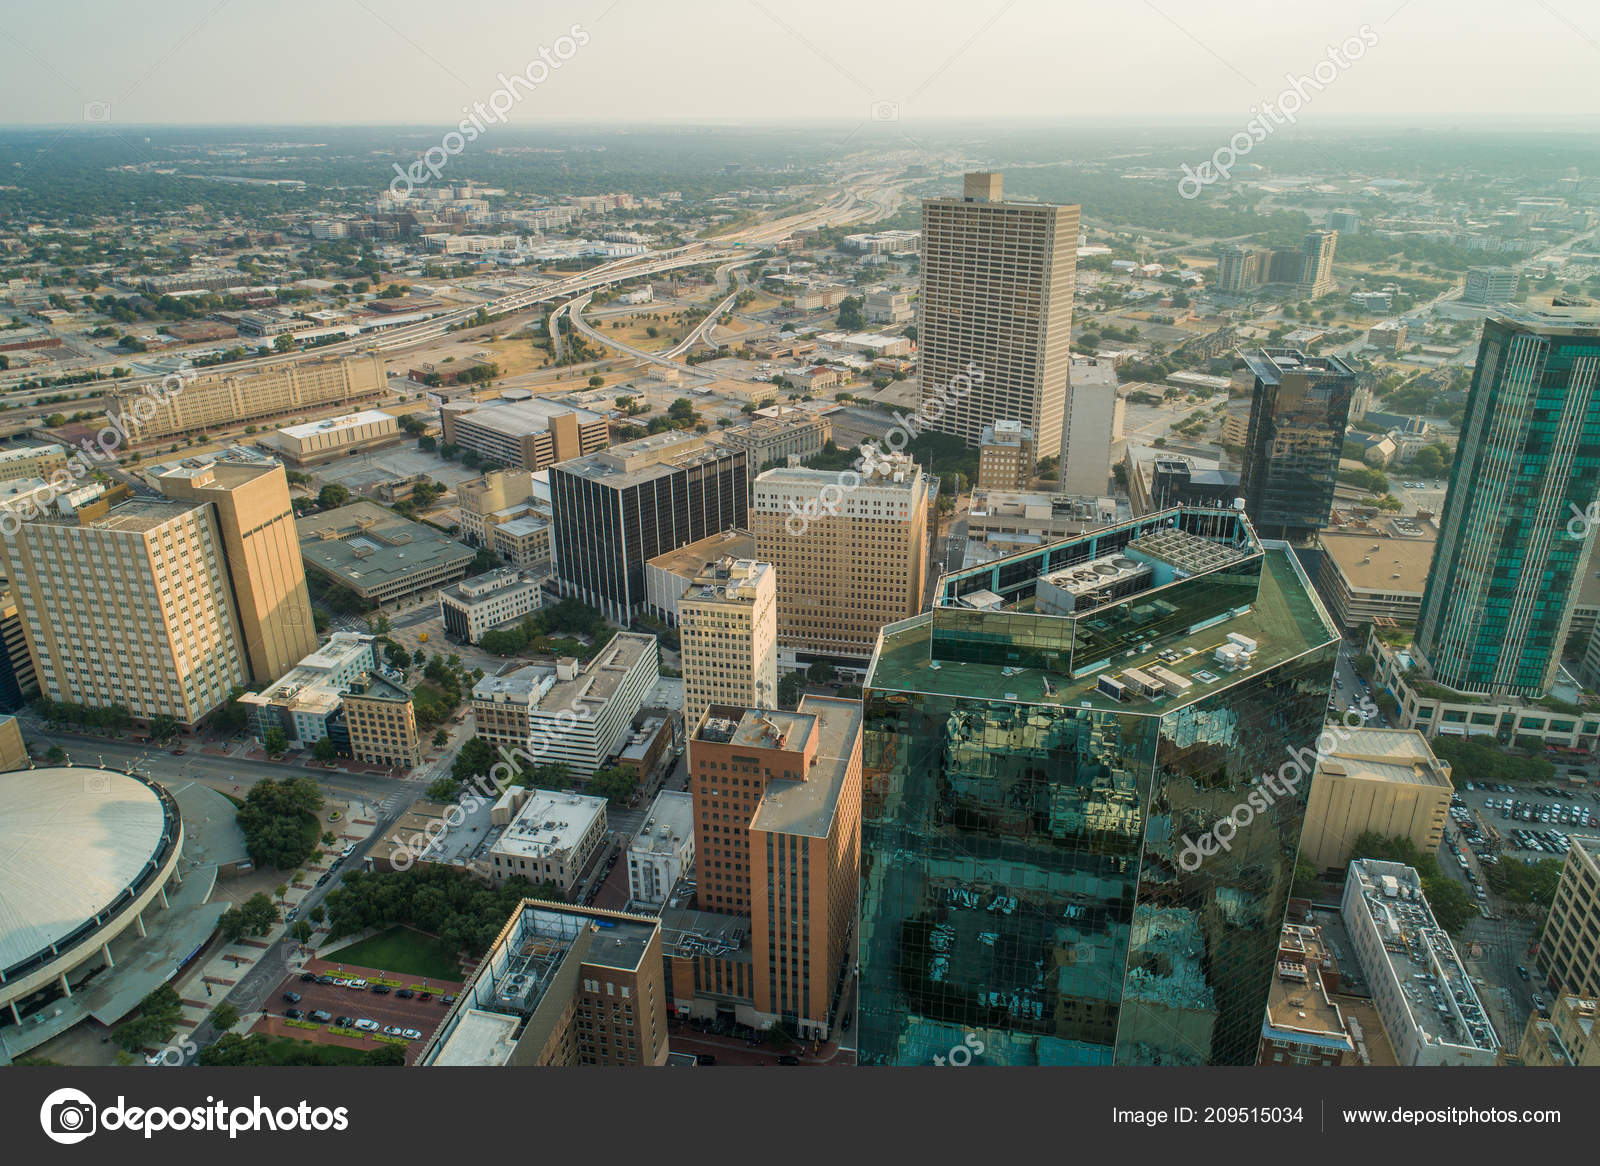 Aerial Image Shot Drone Downtown Fort Worth Texas — Stock